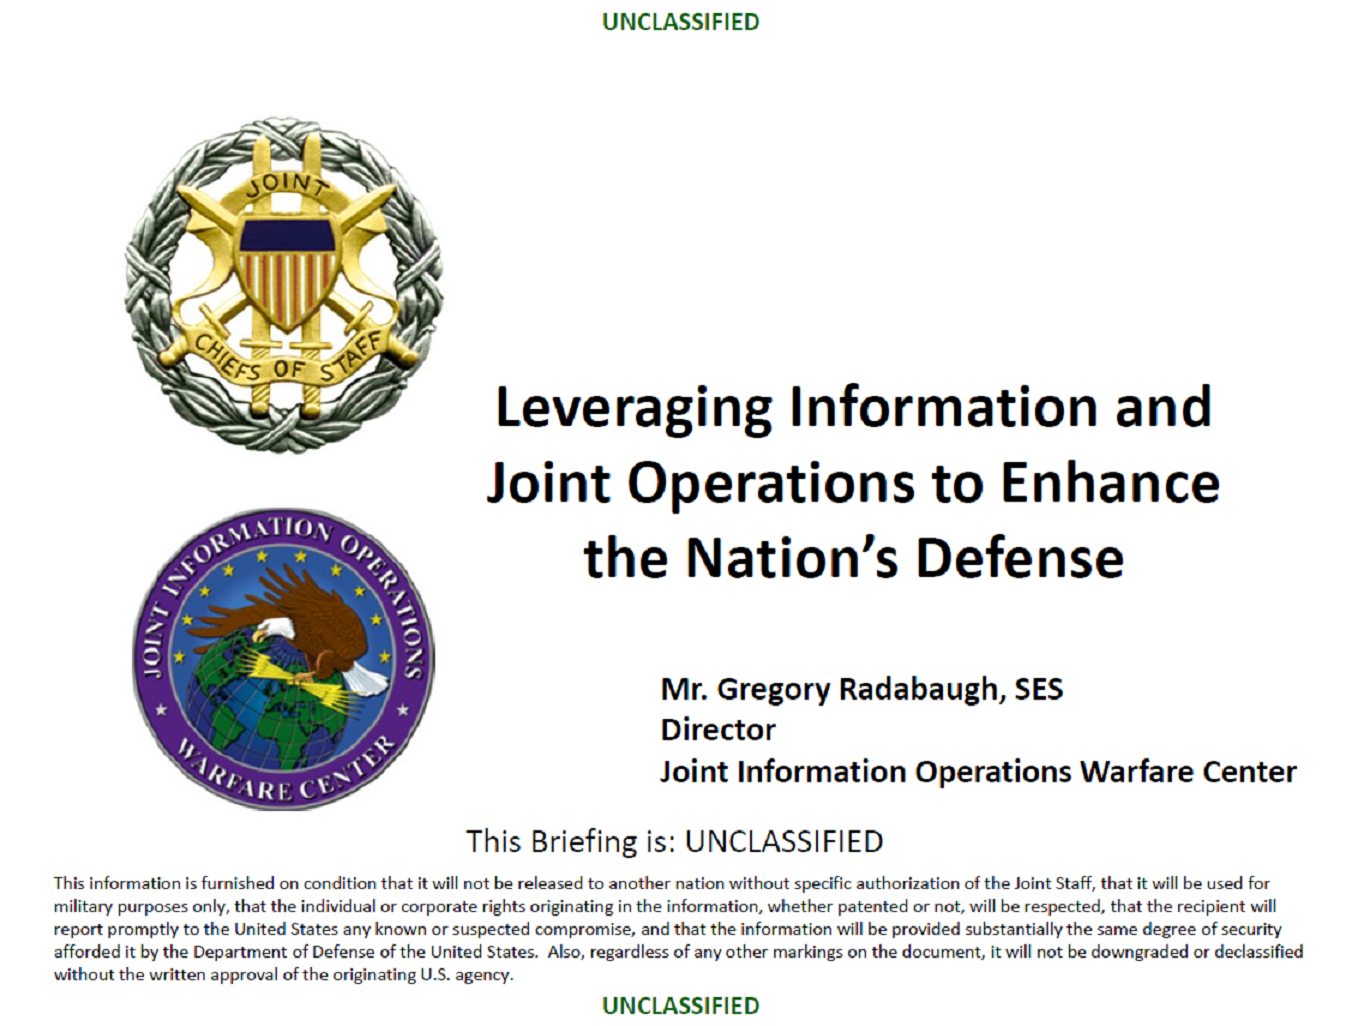 Leveraging Information and Joint Operations to Enhance the Nation's Defense